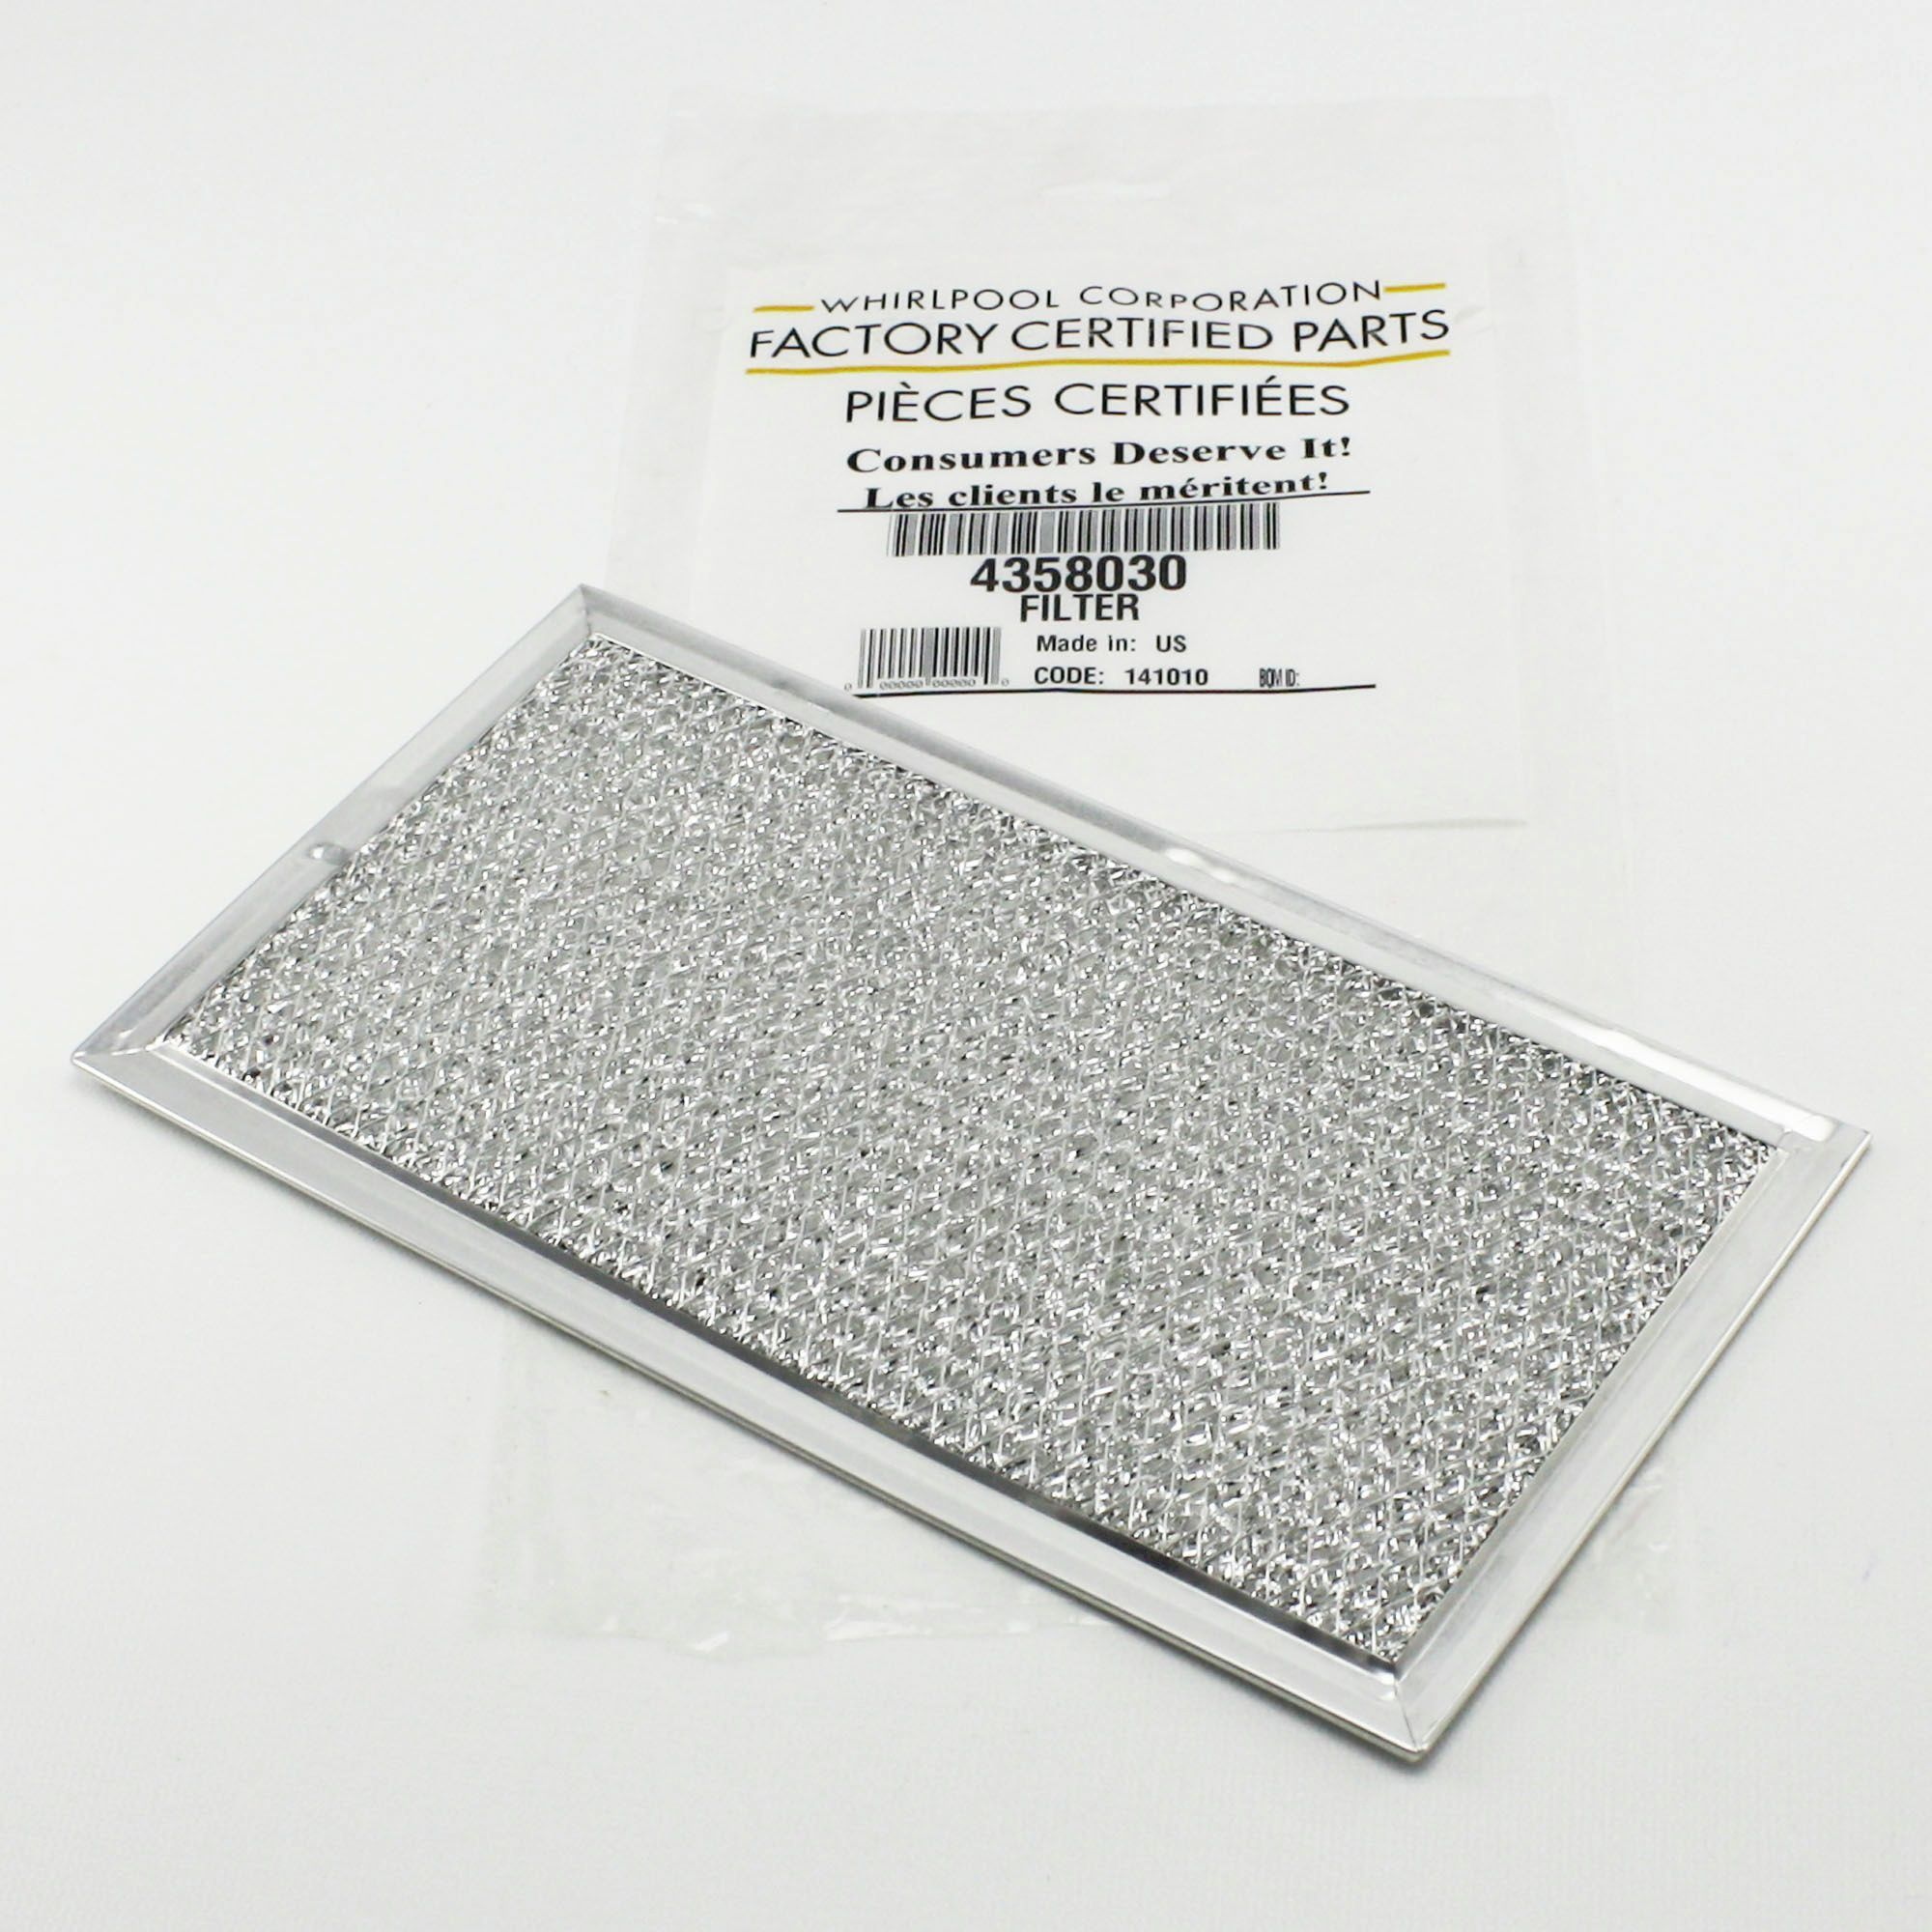 WP4358030 For Whirlpool Microwave Grease Filter Filters